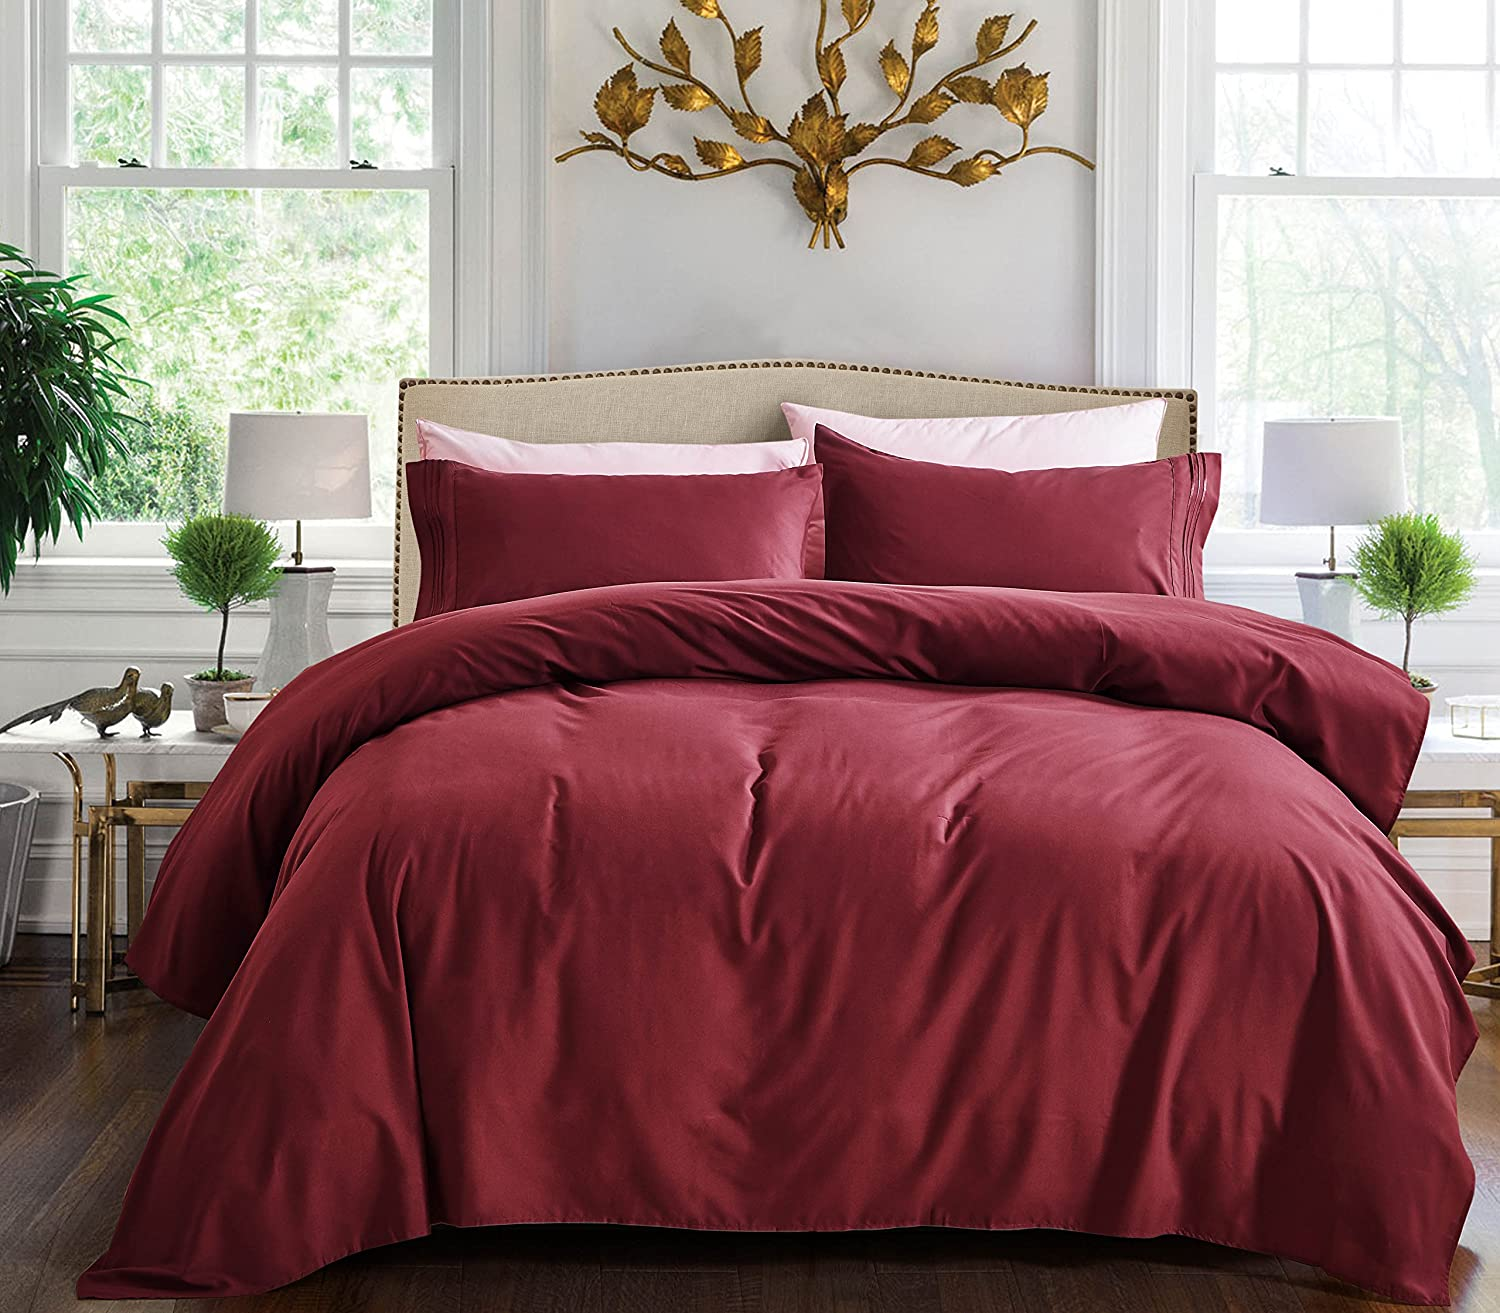 4 Piece Bed Sheet Set (Cal King, Burgundy)